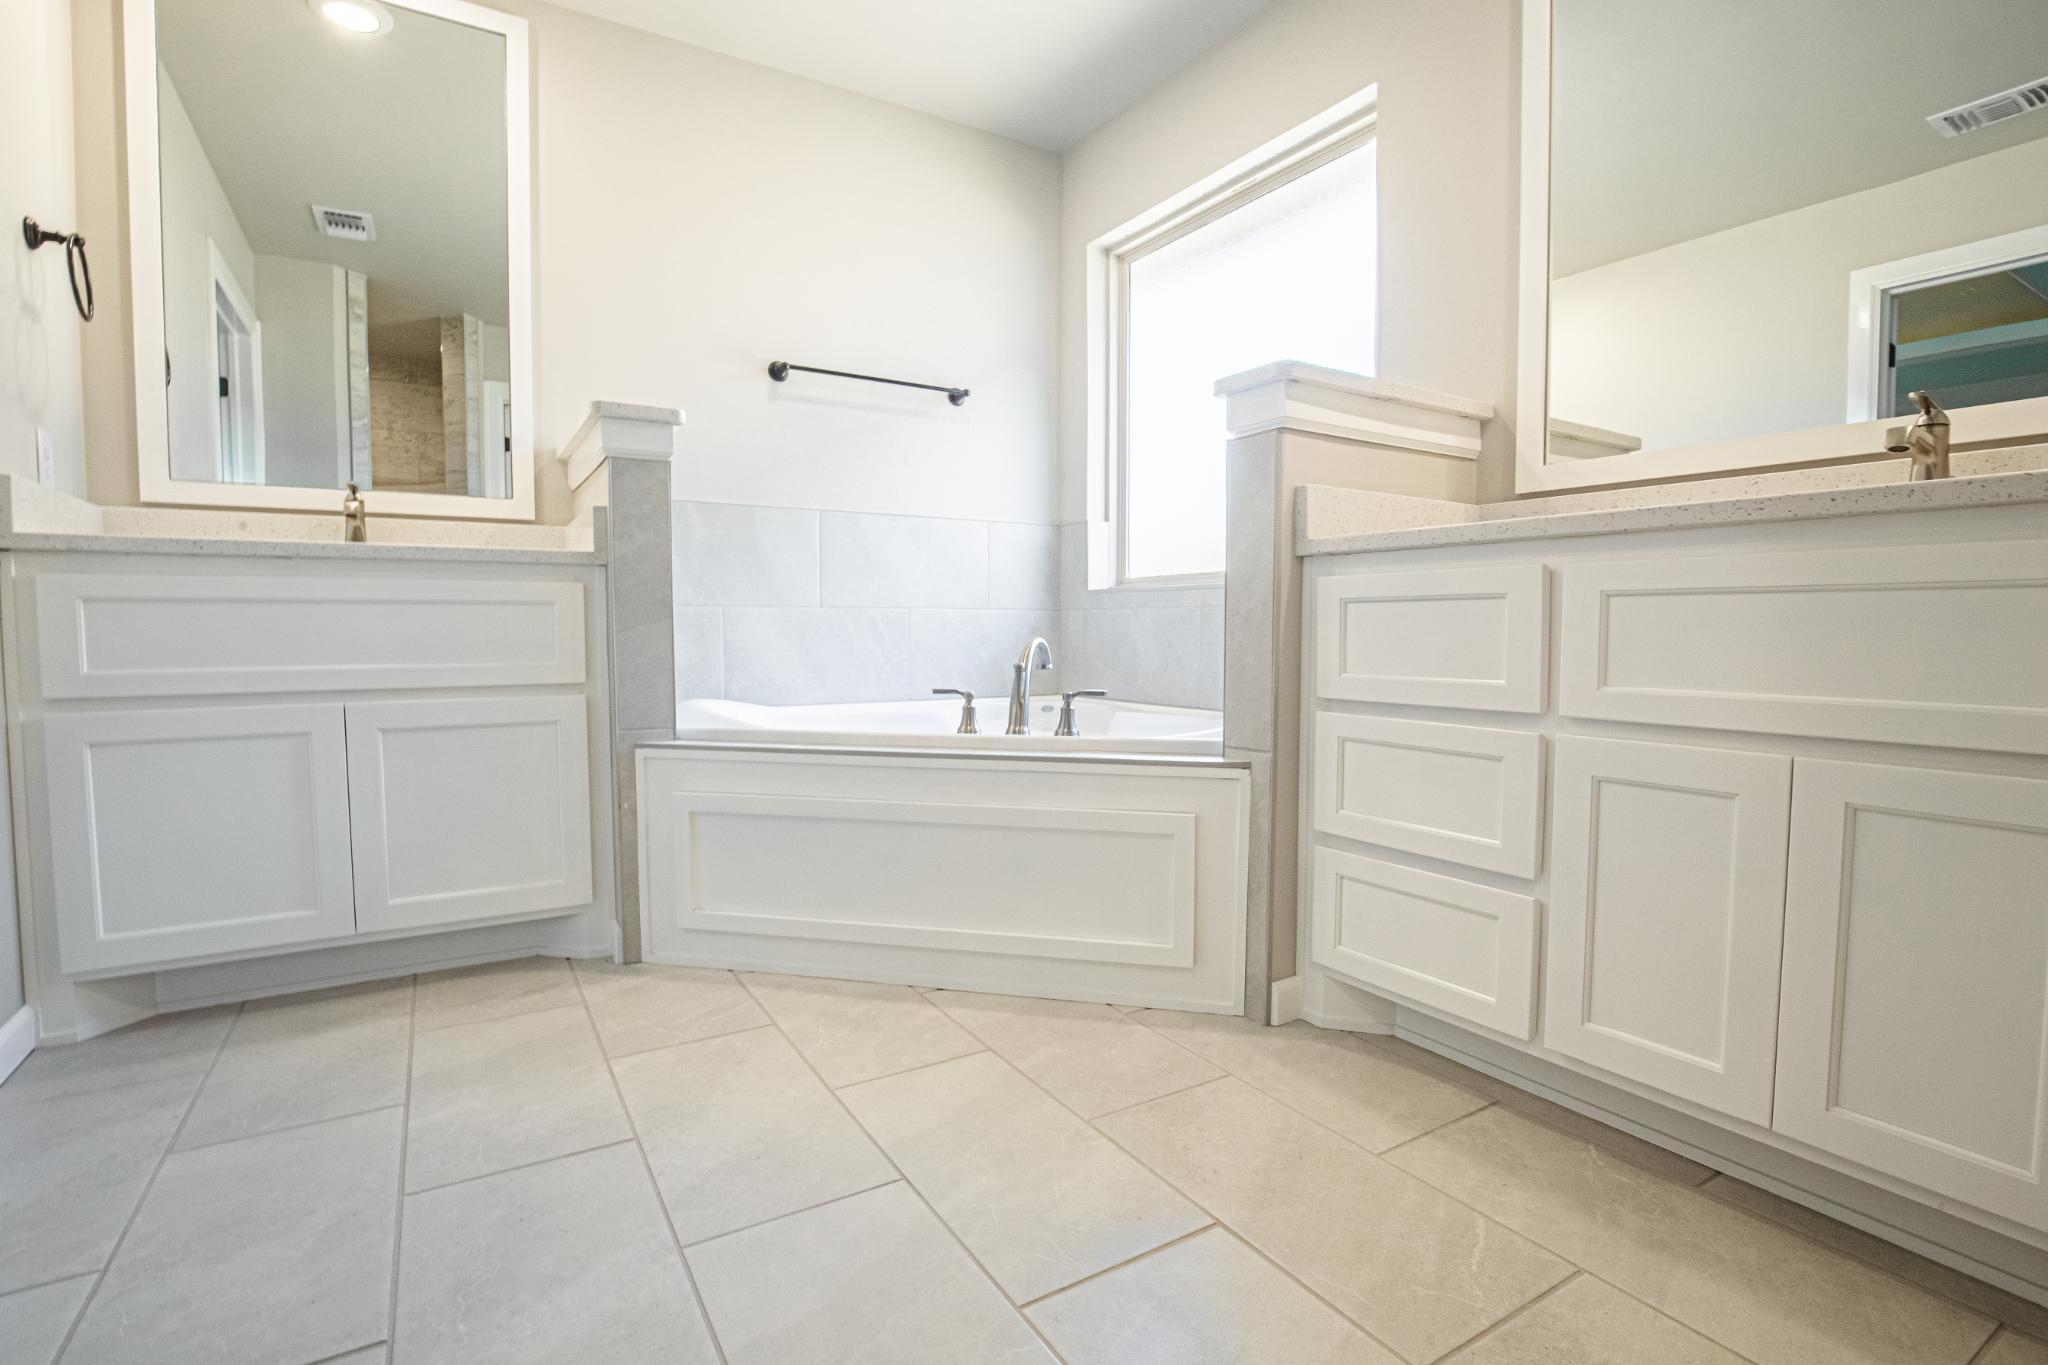 Bathroom featured in the Shiloh PLUS By Homes By Taber in Oklahoma City, OK